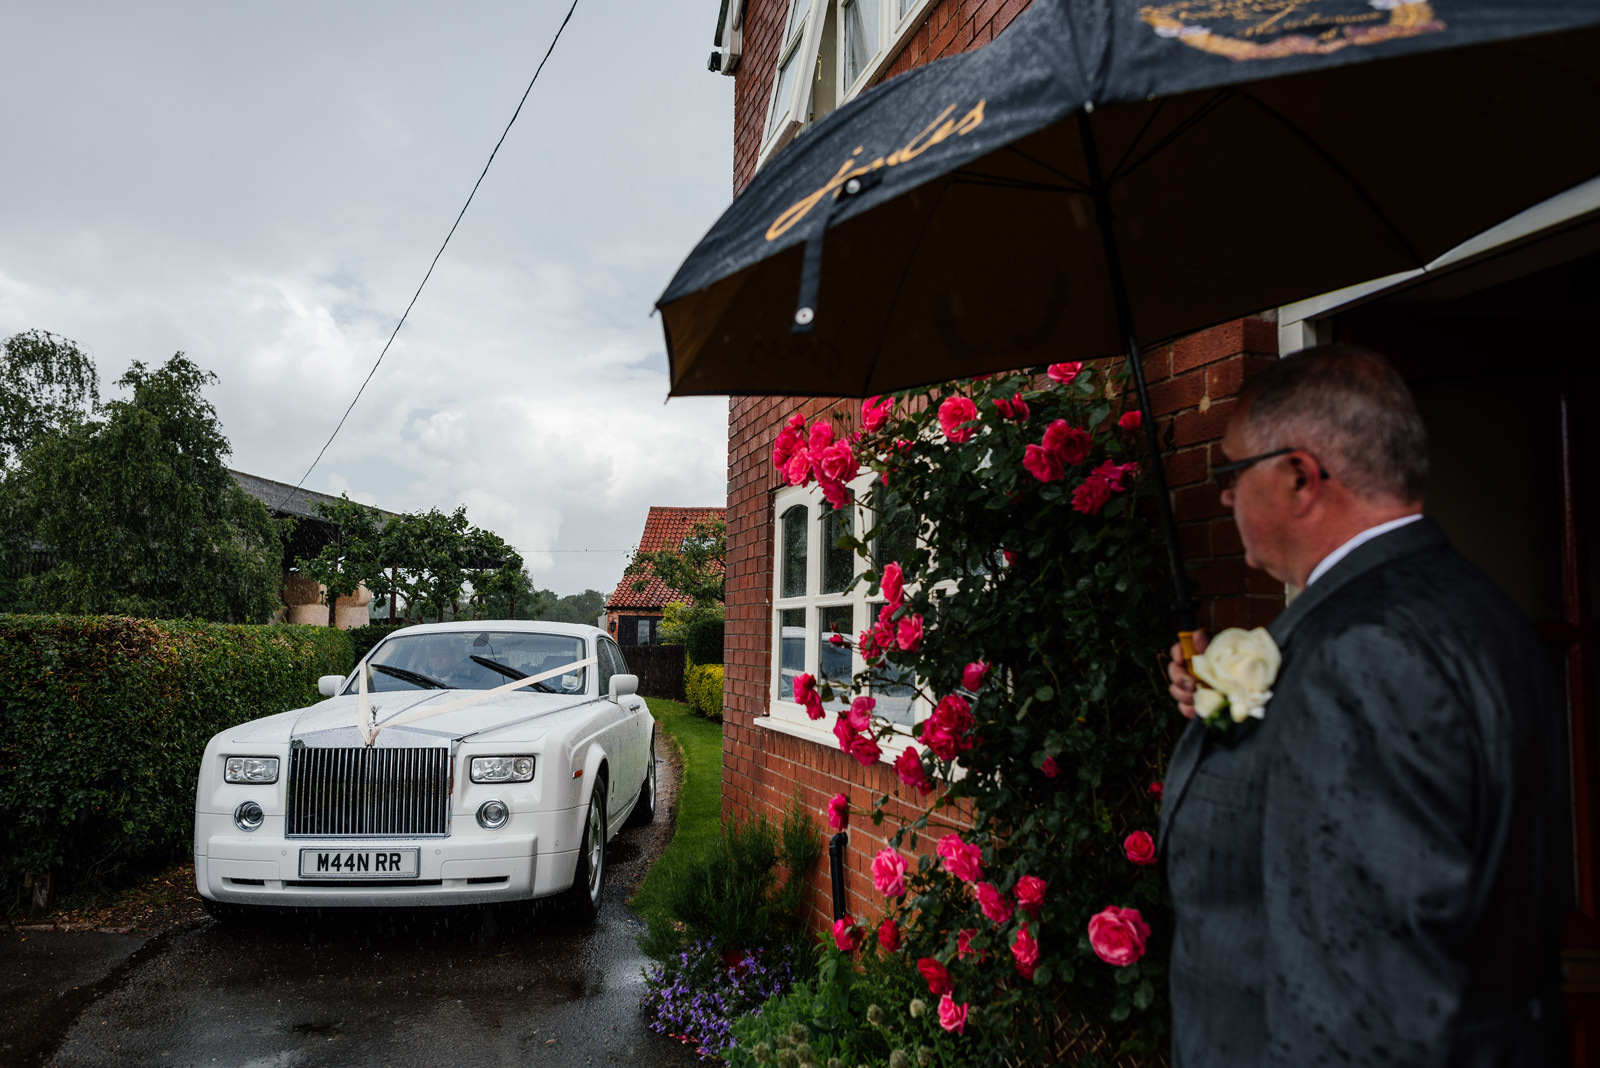 wedding car arriving at bride's house